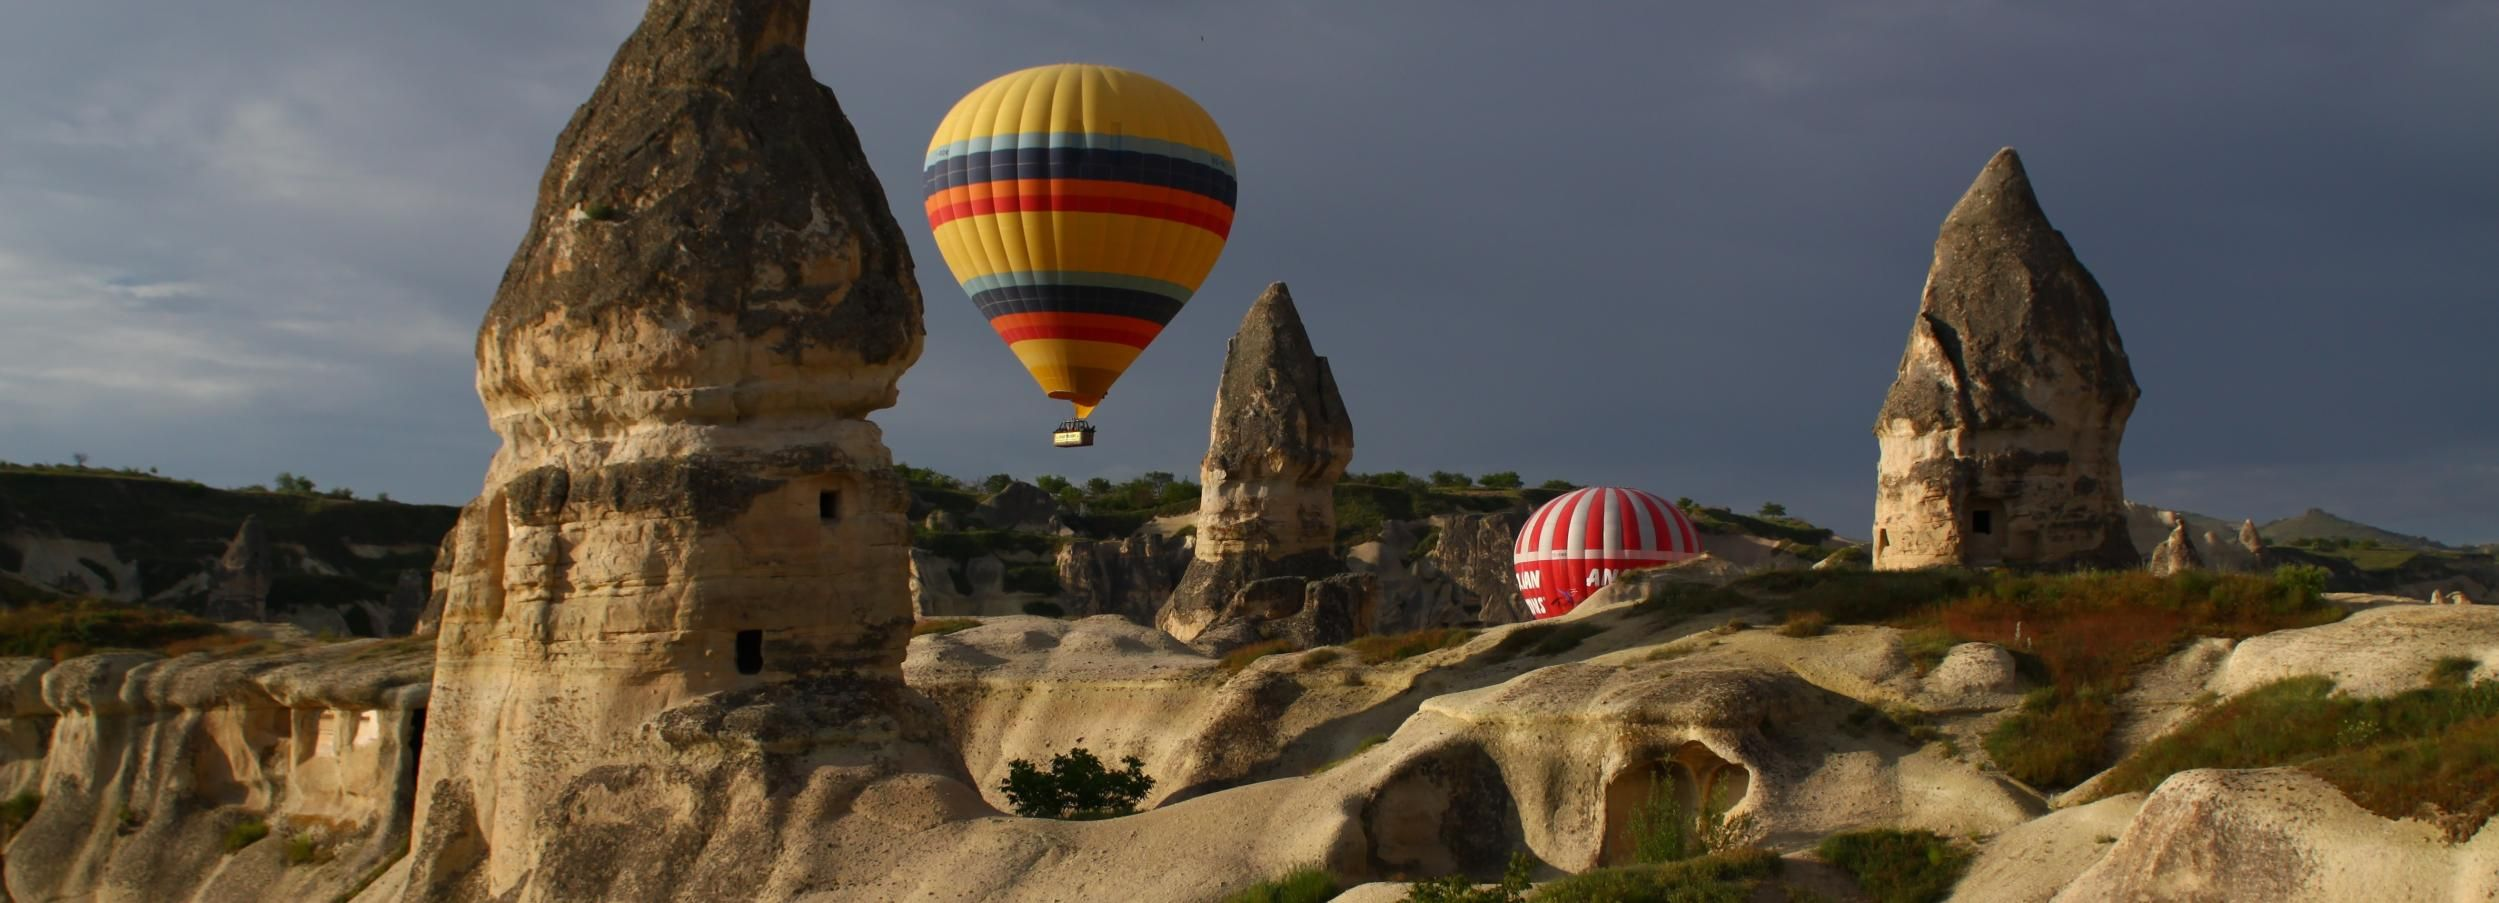 From Istanbul: Cappadocia Highlights 2-Day Tour